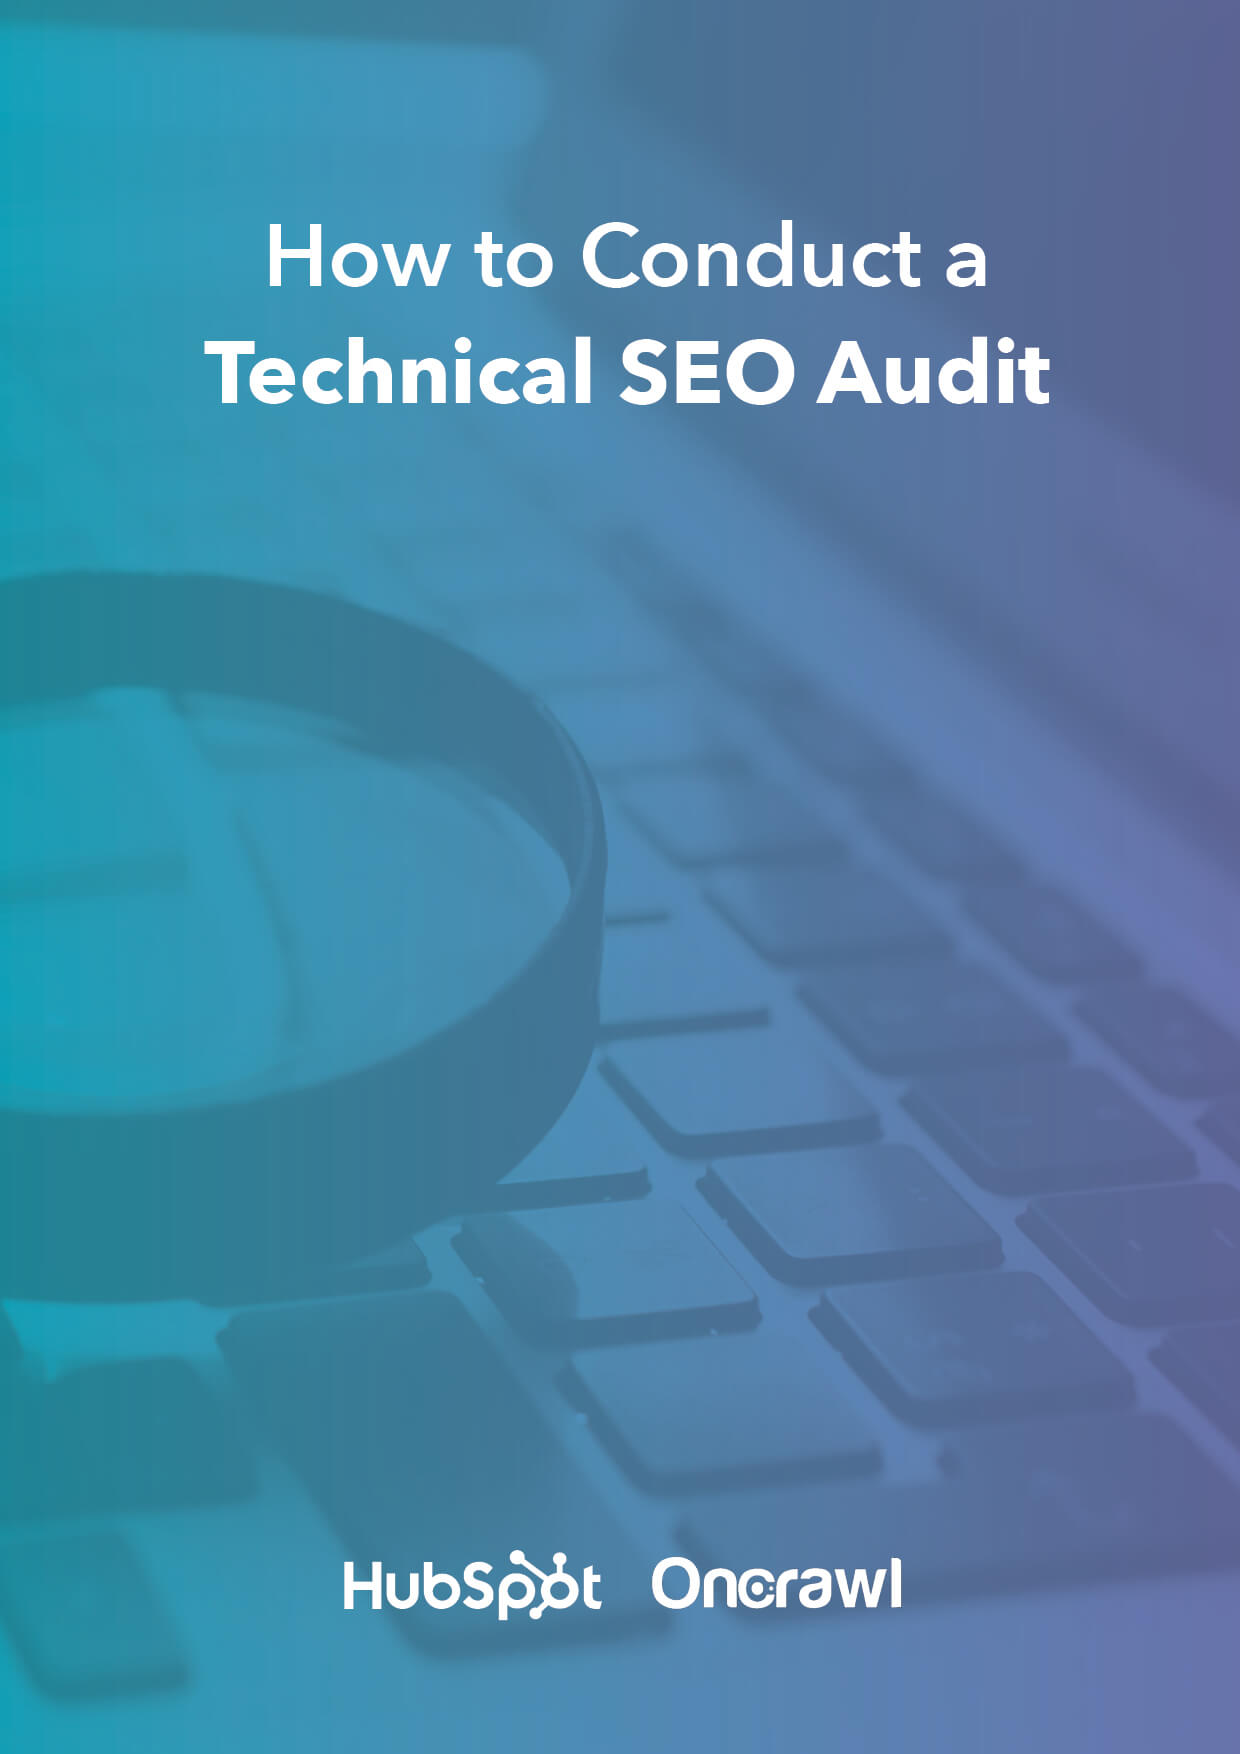 How to Conduct a Technical SEO Audit 1